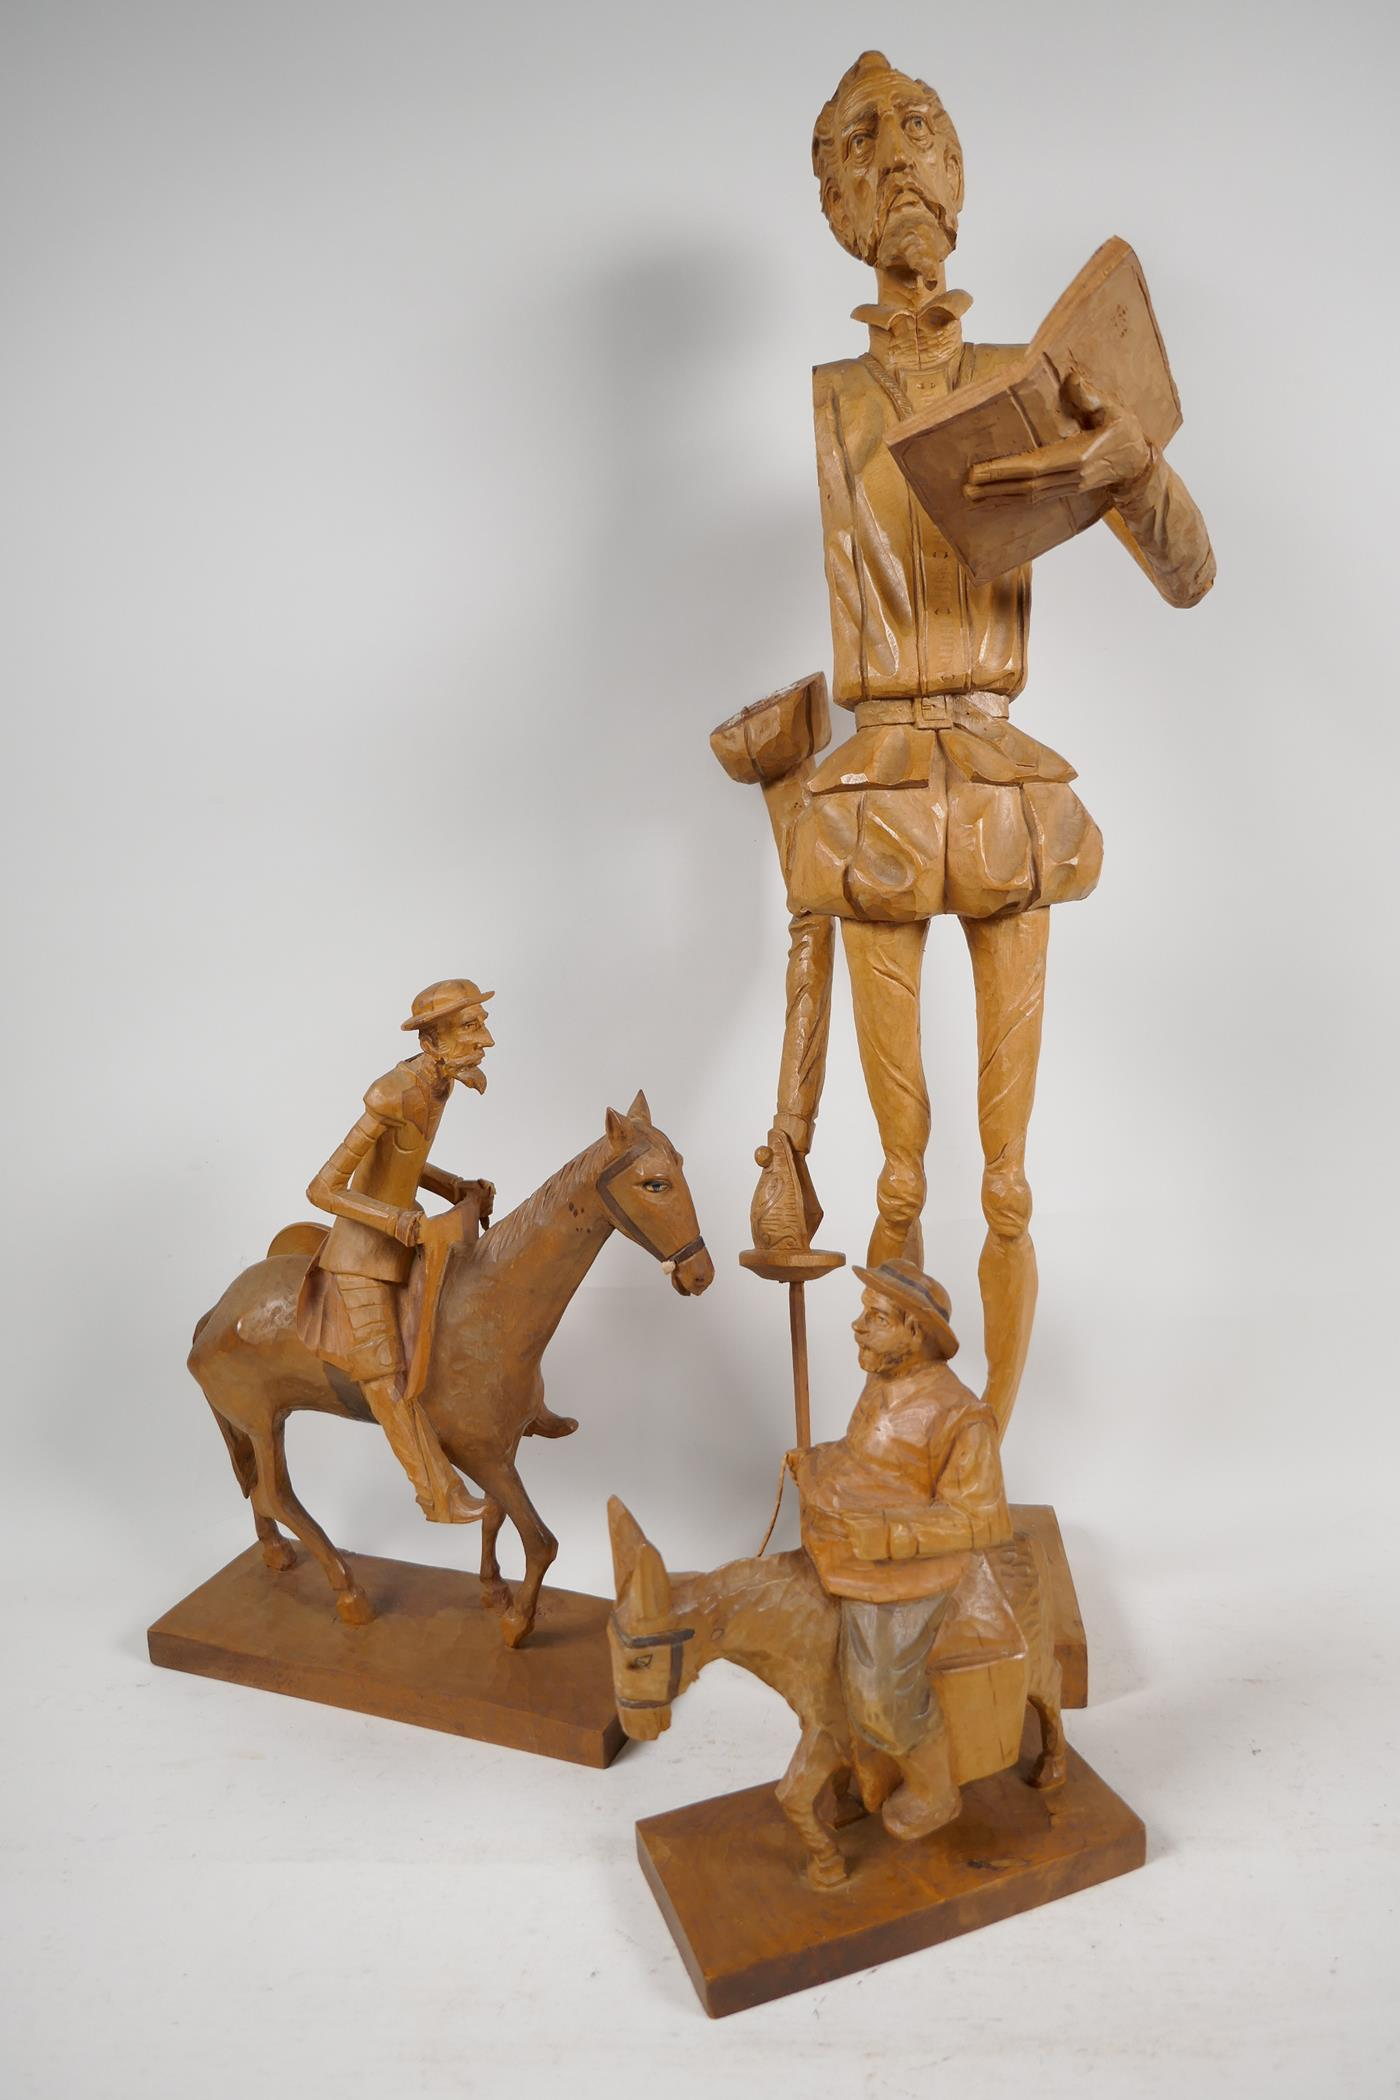 Two carved wood models of Don Quioxte and Sancho Panza, and a carved wood figure of the Don, A/F